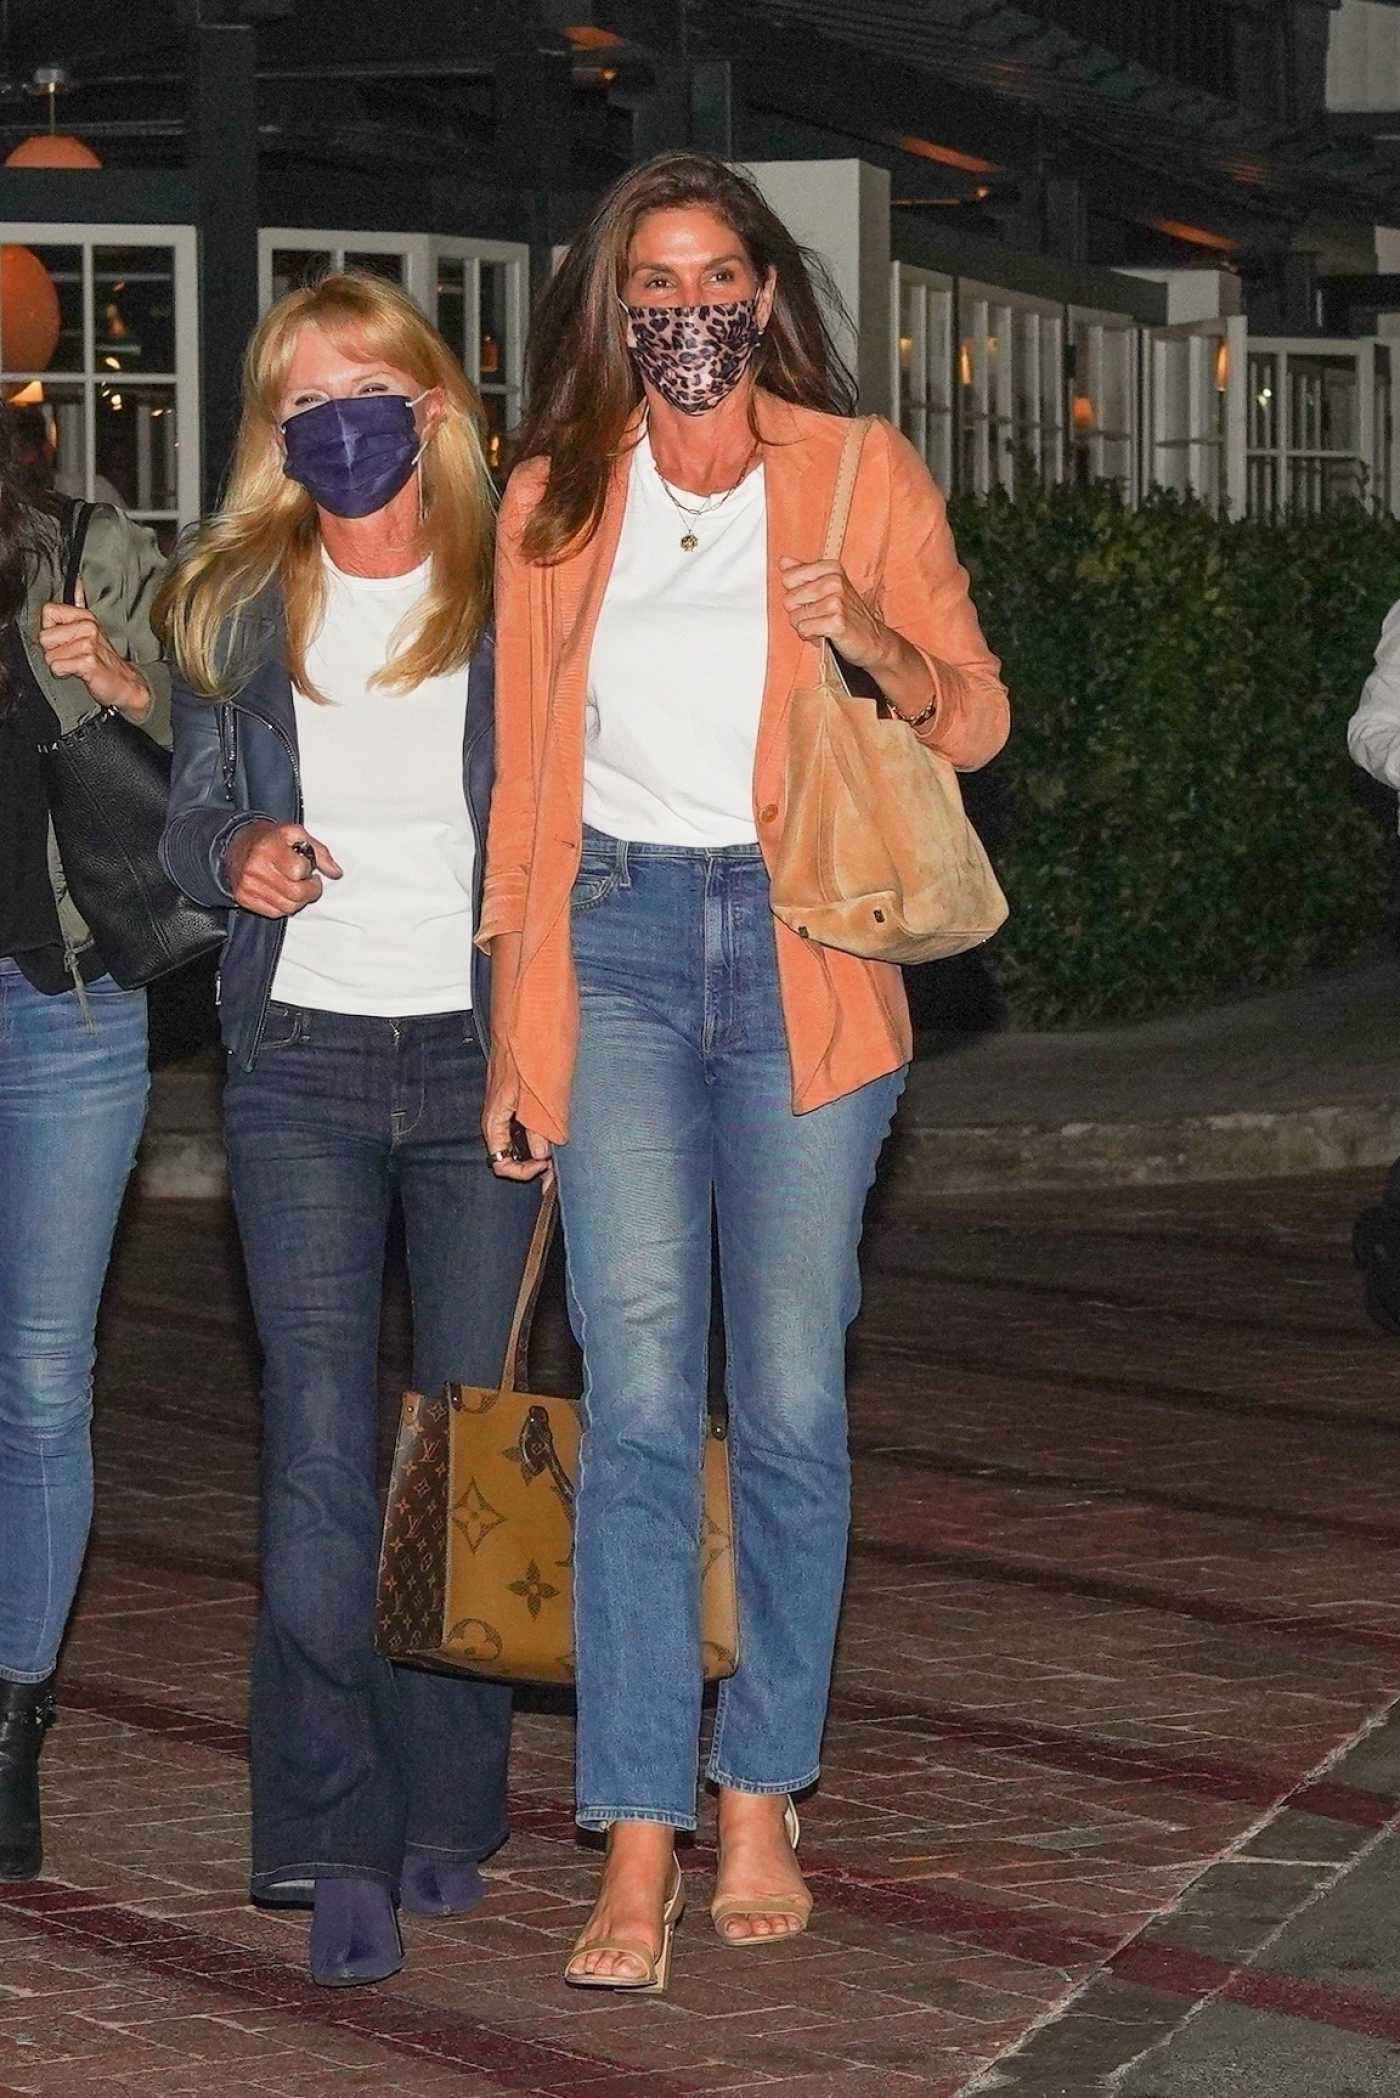 Cindy Crawford in an Orange Blazer Leaves the Lucky Restaurant in Malibu 04/29/2021